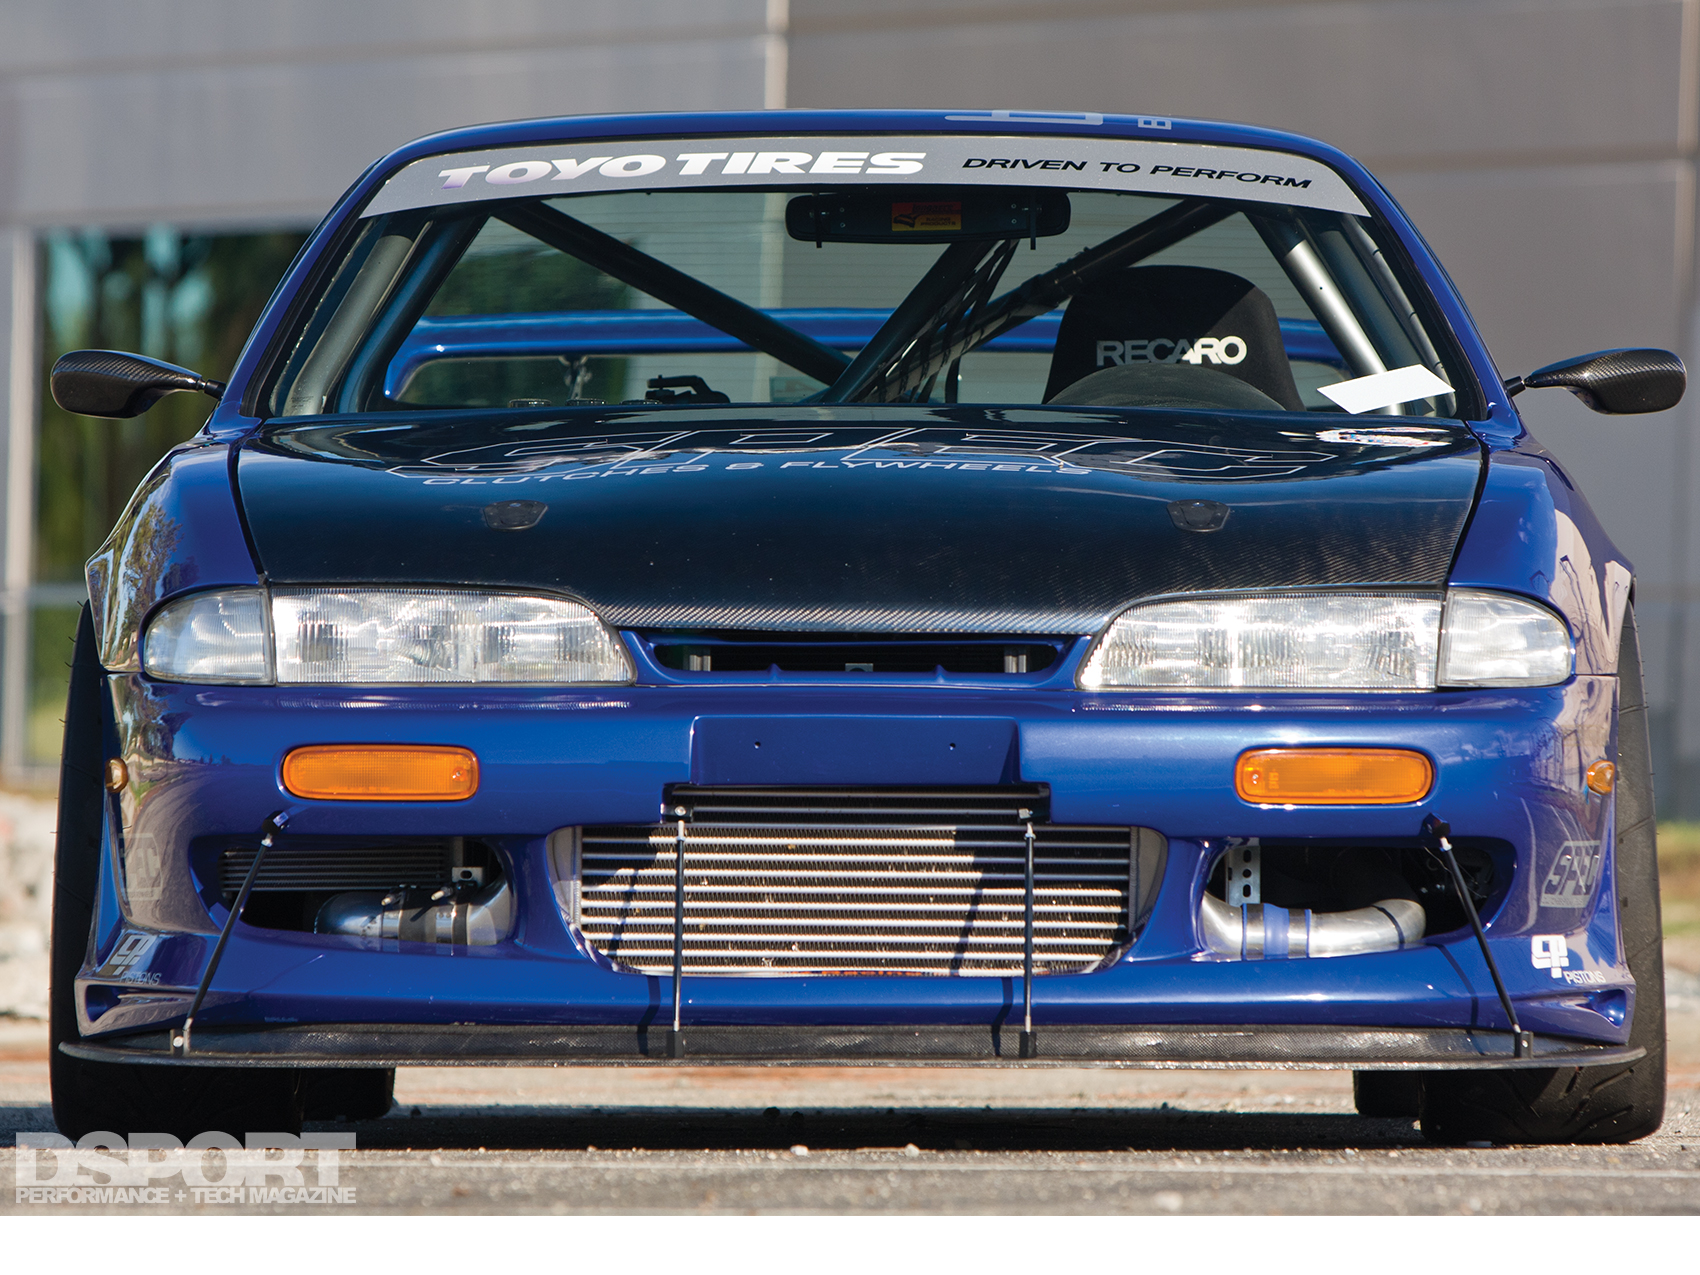 619 WHP Nissan S14 Goes From Strip To Circuit